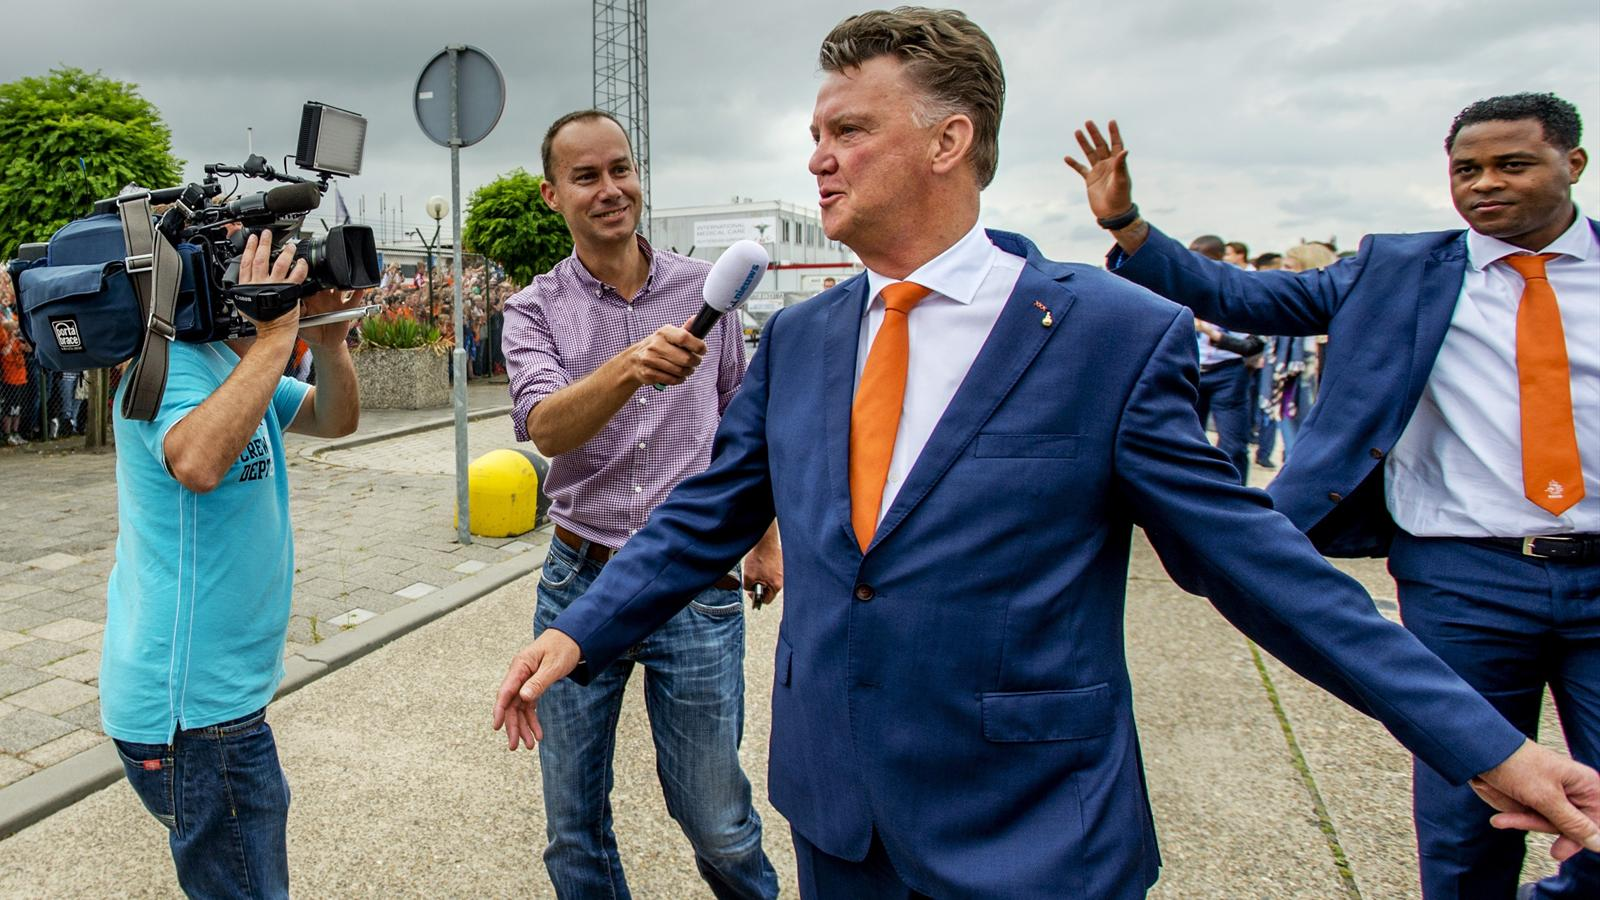 Netherlands football team head coach Louis van Gaal arrives at Rotterdam-The Hague airport, in Rotterdam, on July 13, 2014.